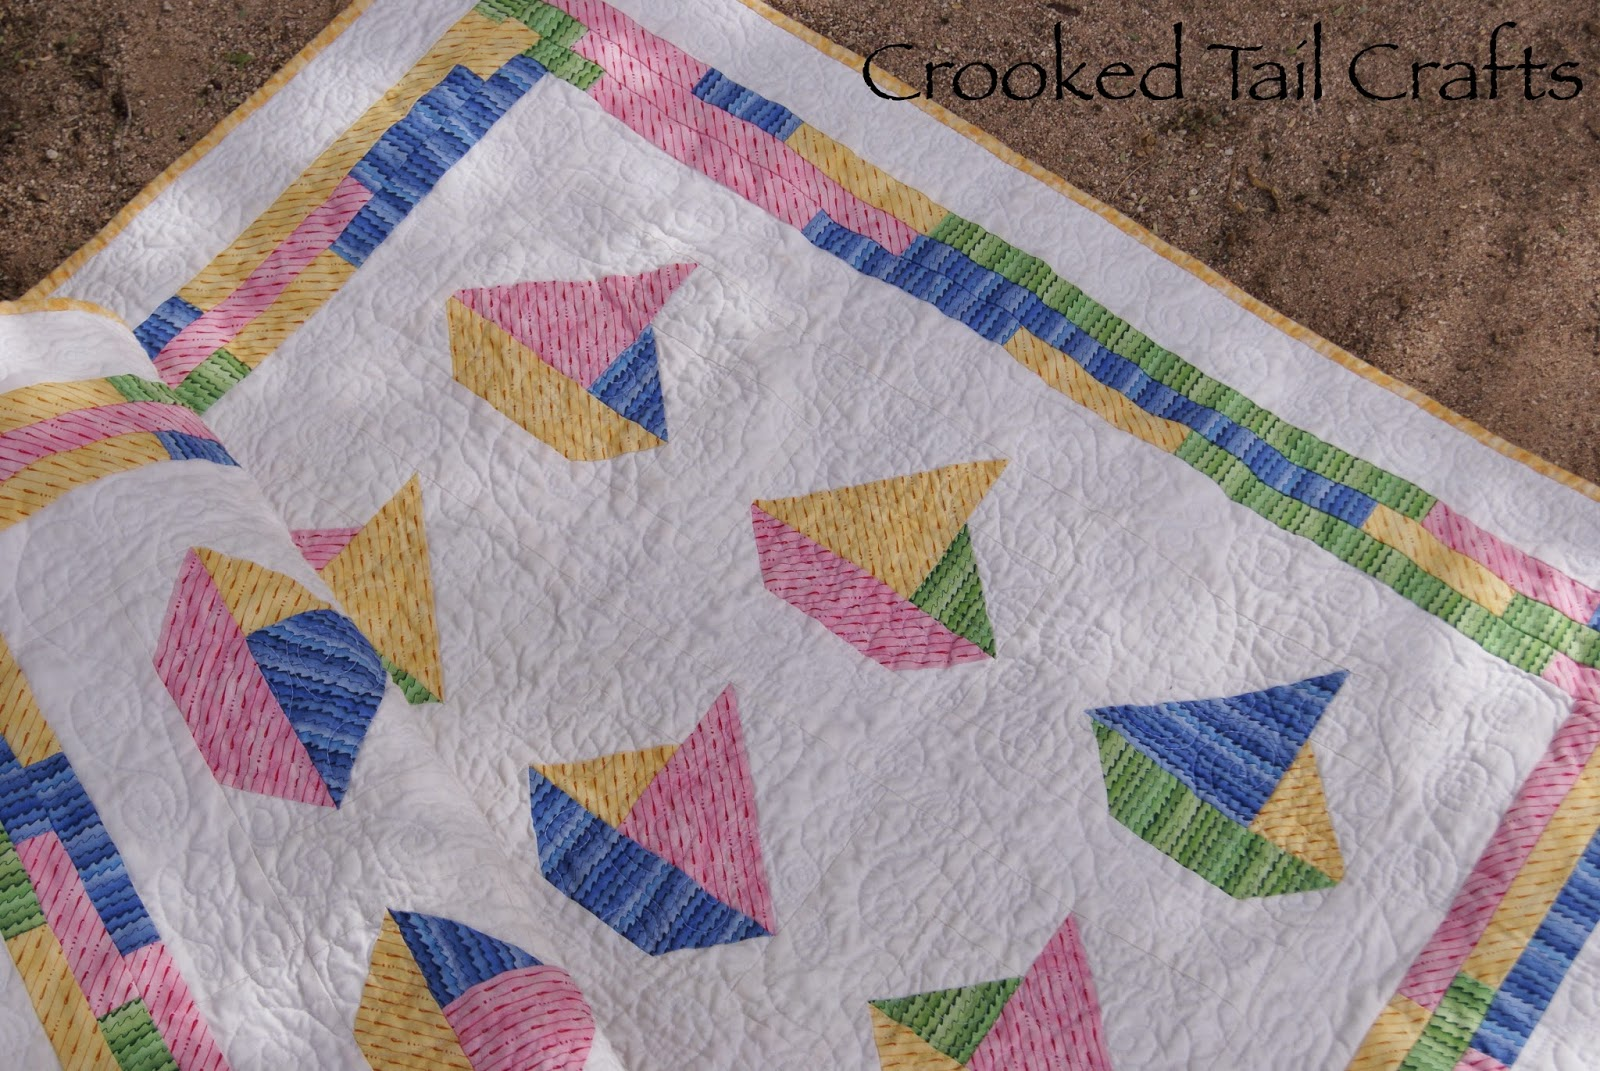 Crooked Tail Crafts: Sailboats in the Festival